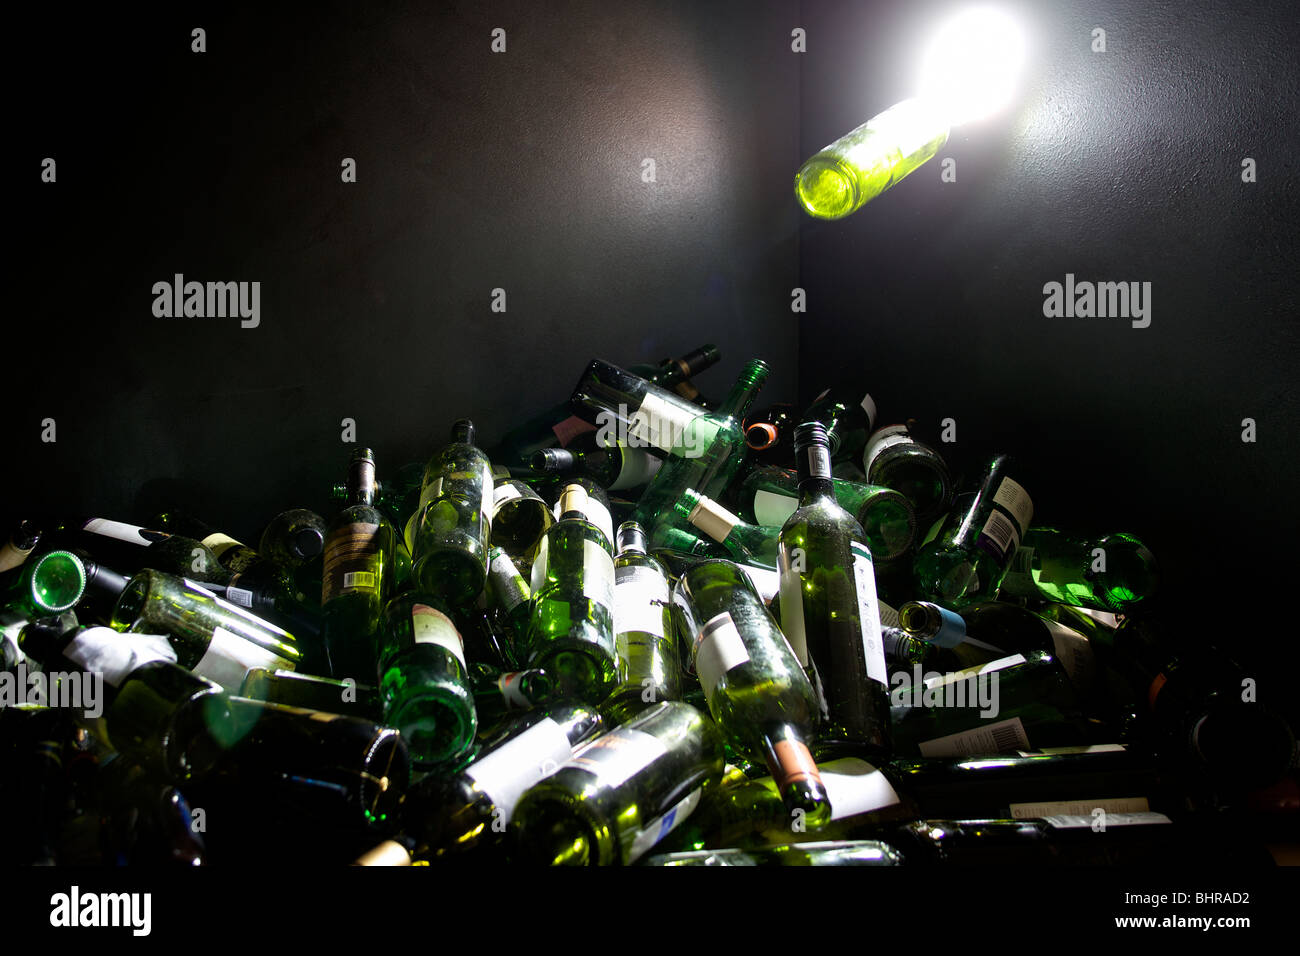 A glass bottle being pushed into a glass recycling bin - Stock Image